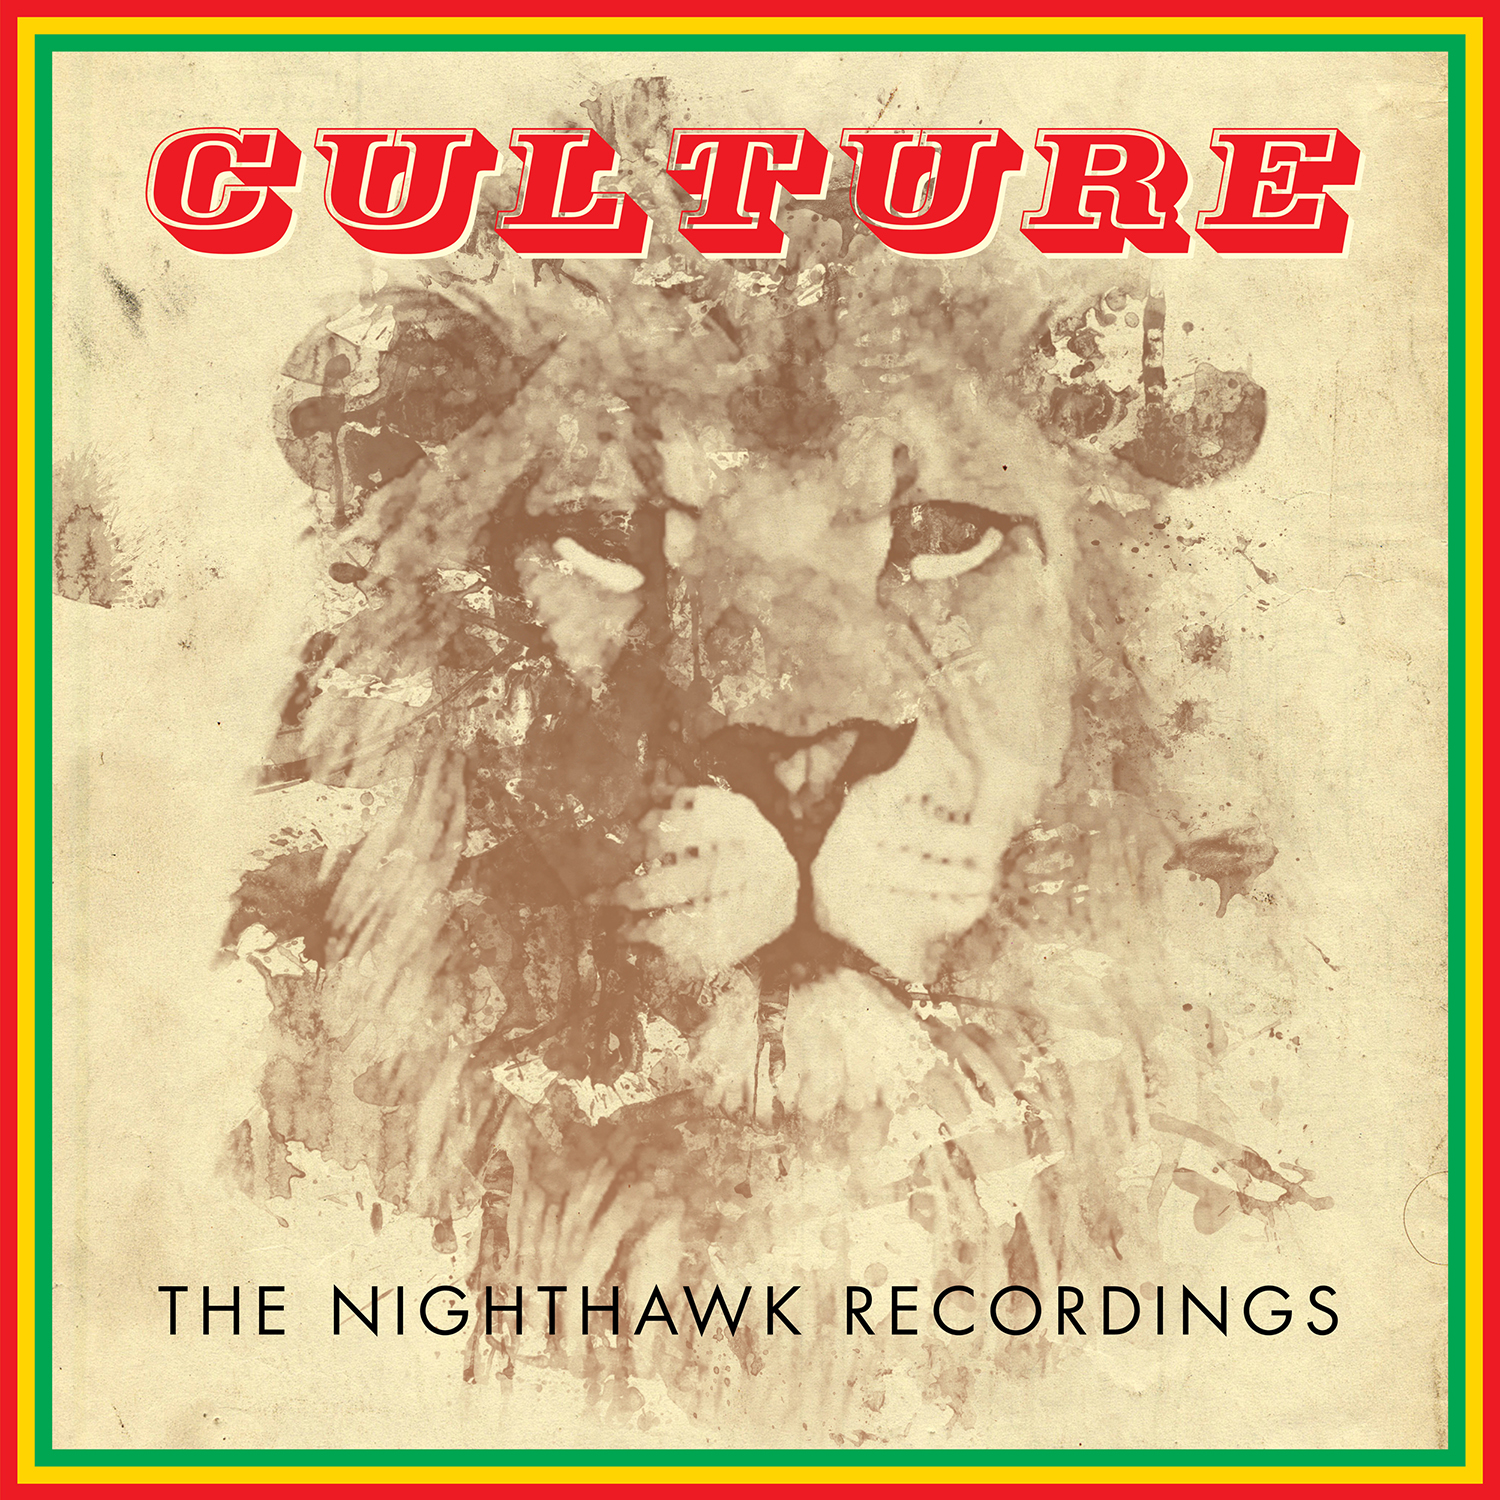 Culture - The Nighthawk Recordings  Release Date: April 12, 2019 Label: Omnivore Recordings  SERVICE: Mastering NUMBER OF DISCS: 1 GENRE: Reggae FORMAT: CD, LP